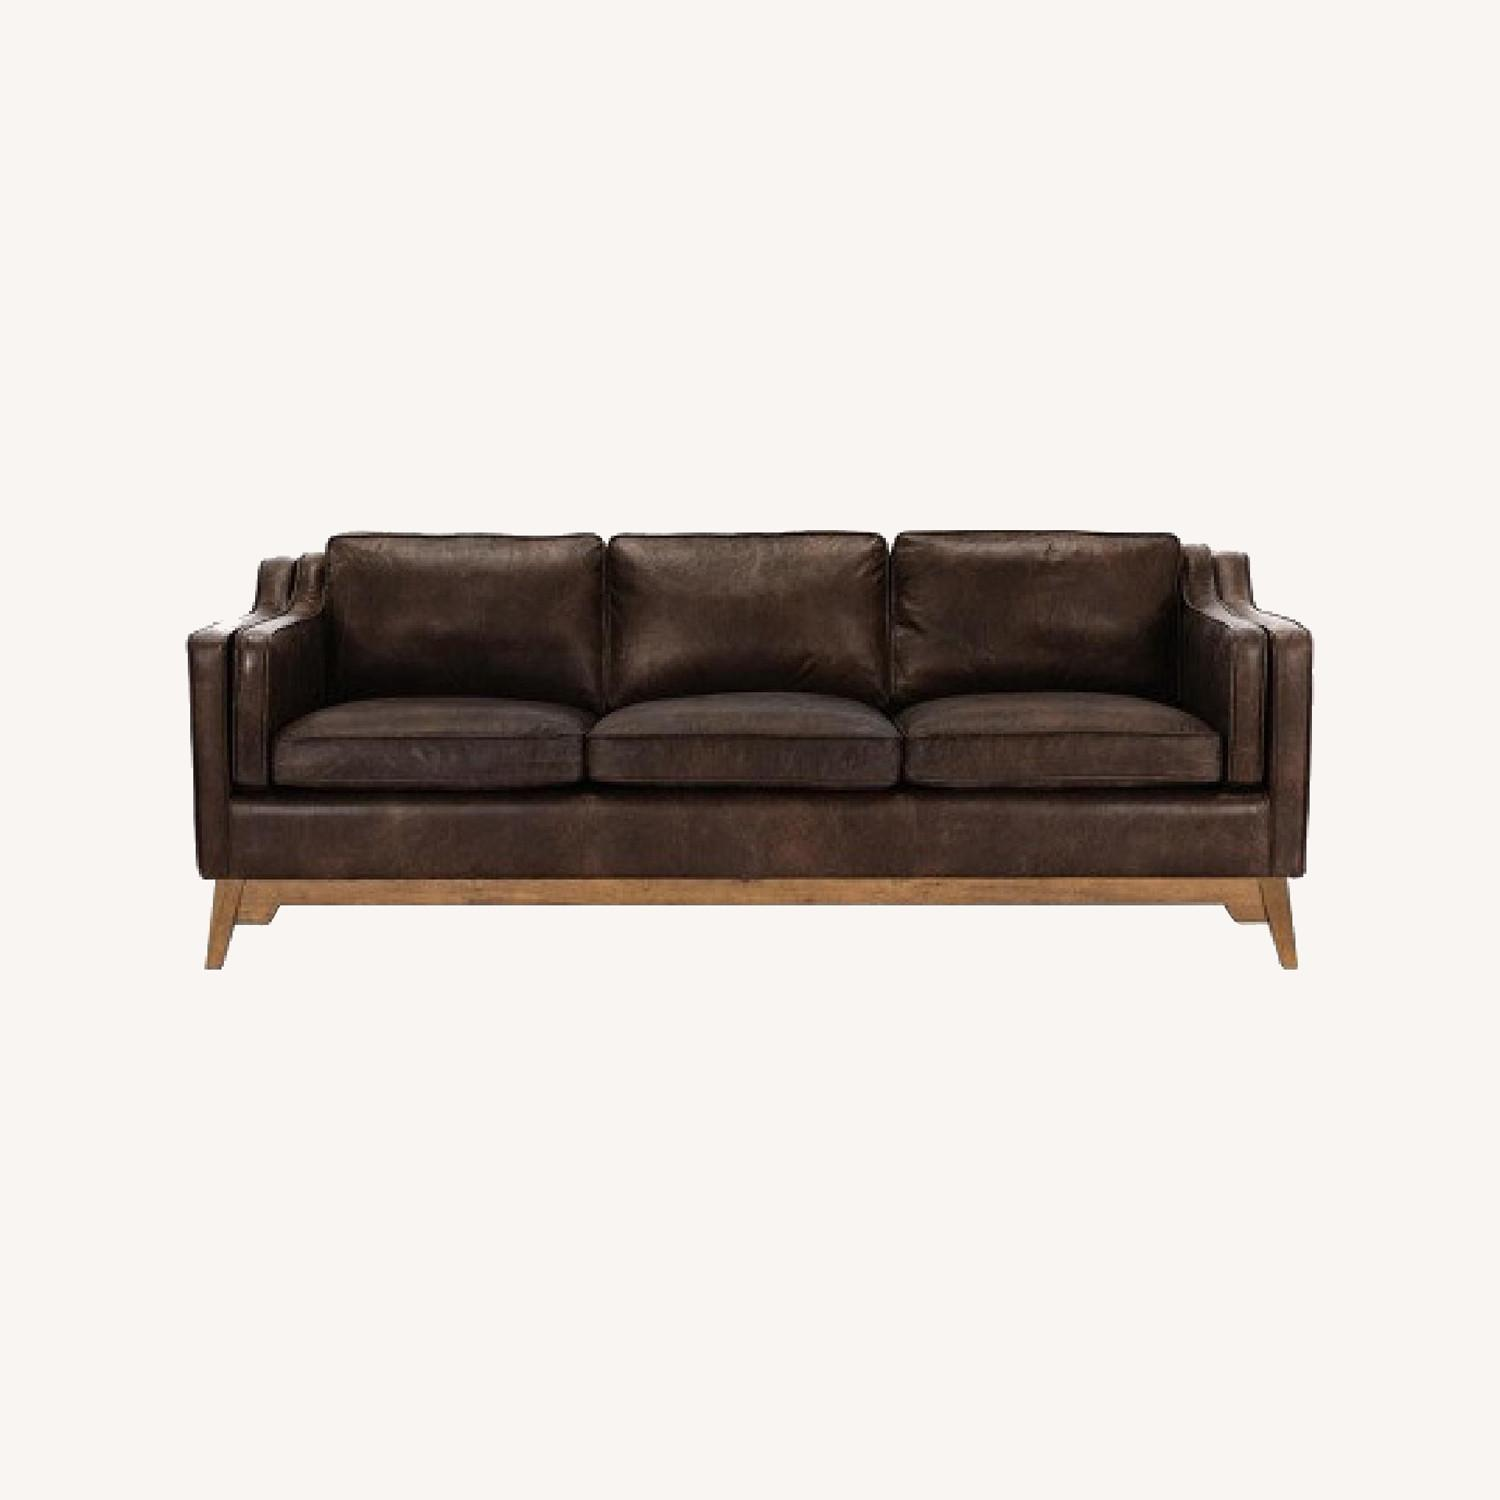 Article Worthington Brown Leather 3Person Couch - image-0